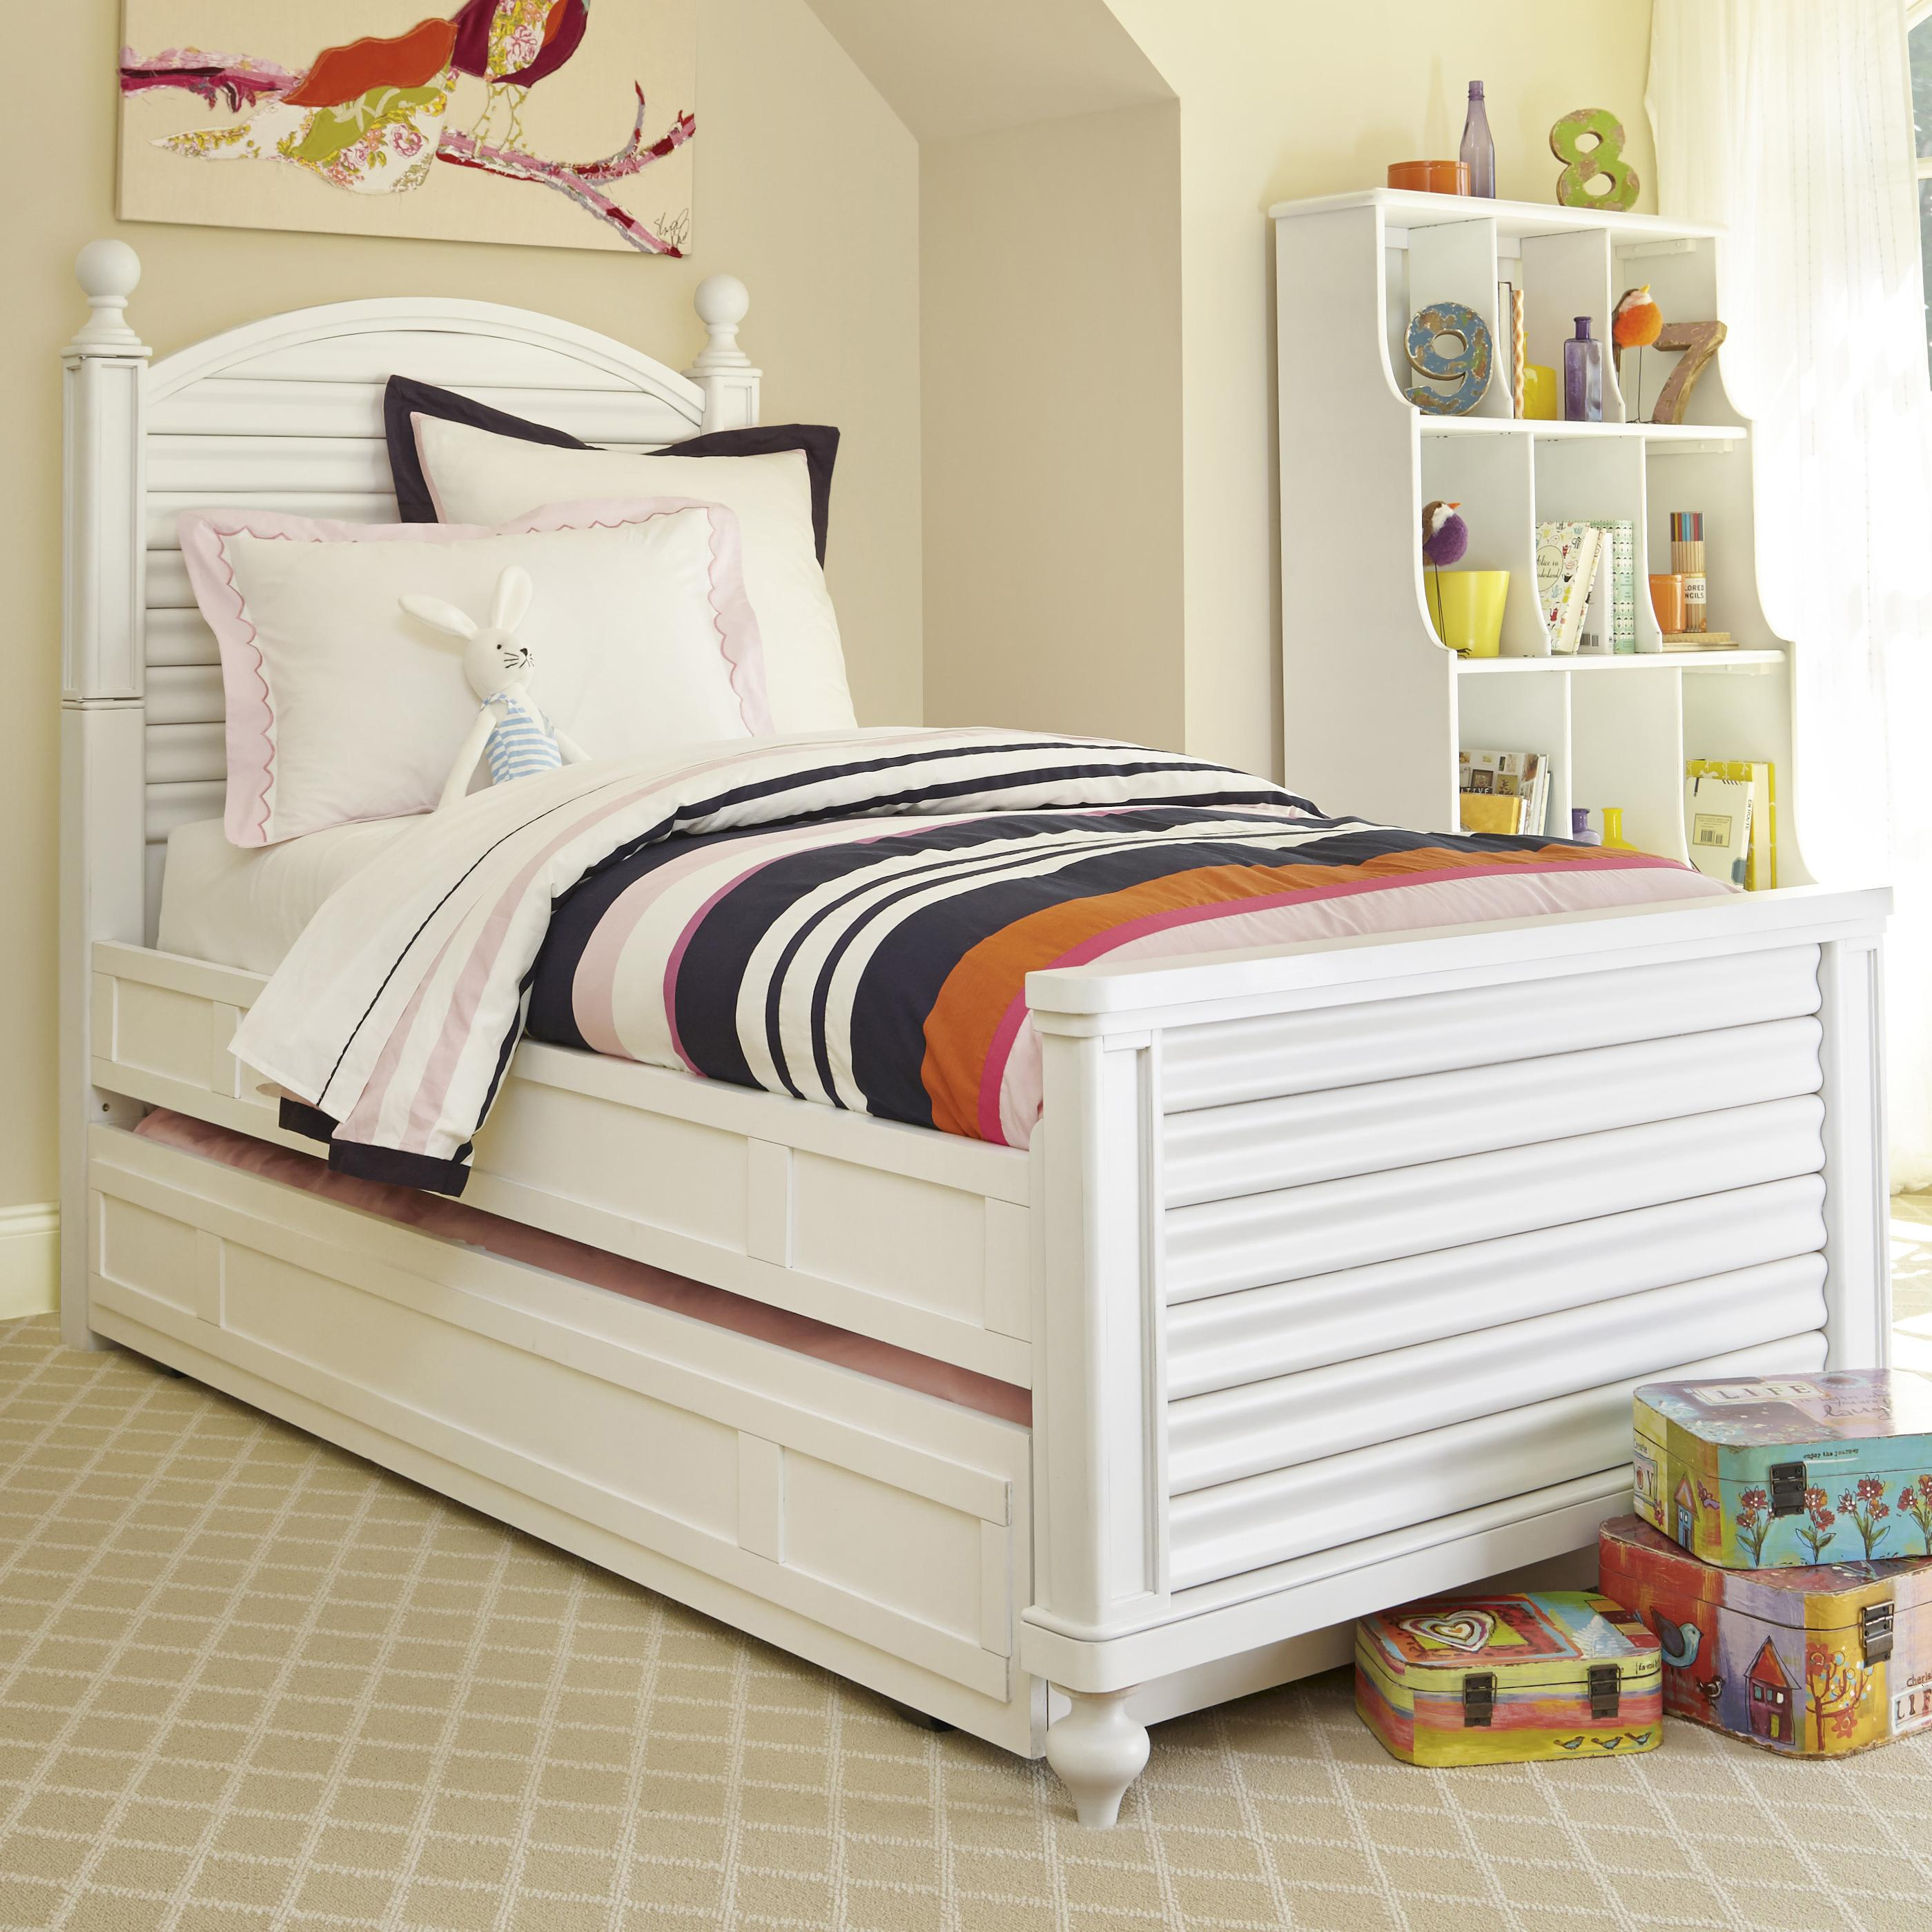 Smartstuff Black and White Full Reading Bed with Trundle - Item Number: 437A043+060